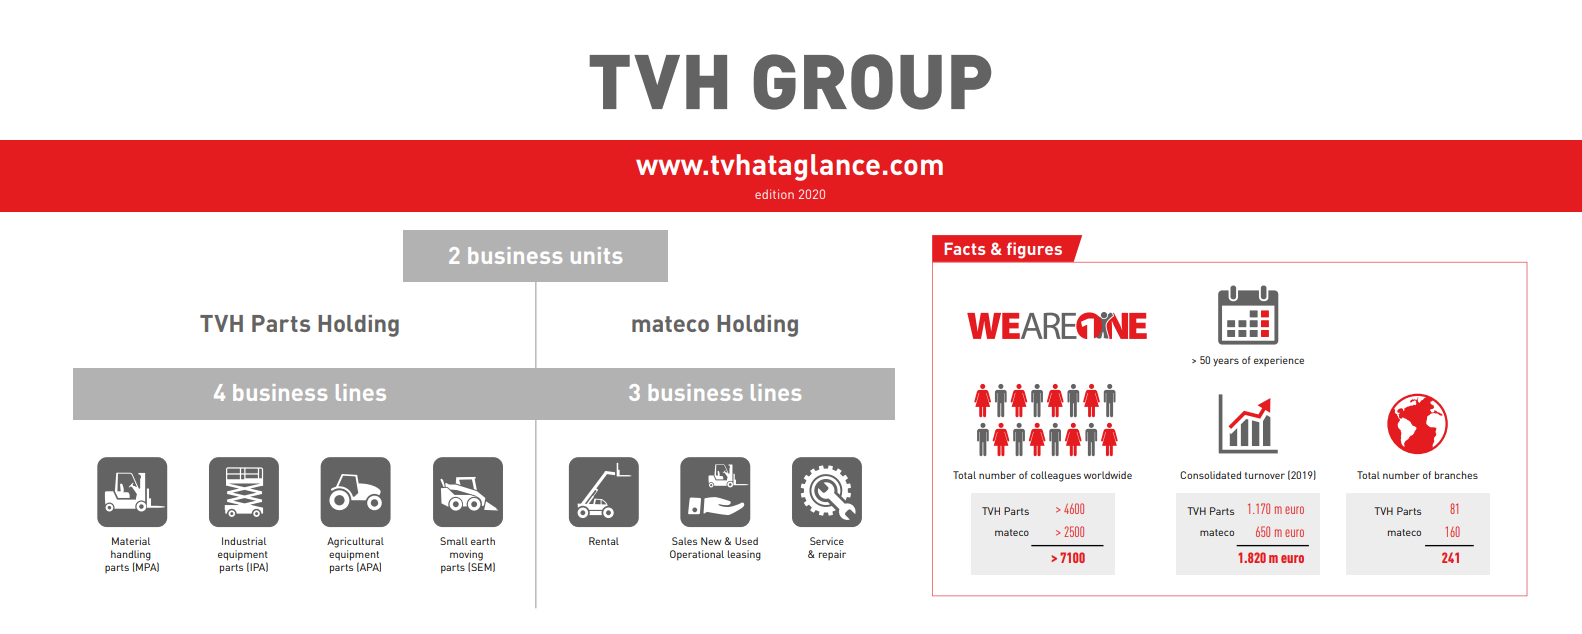 TVH Group facts and figures